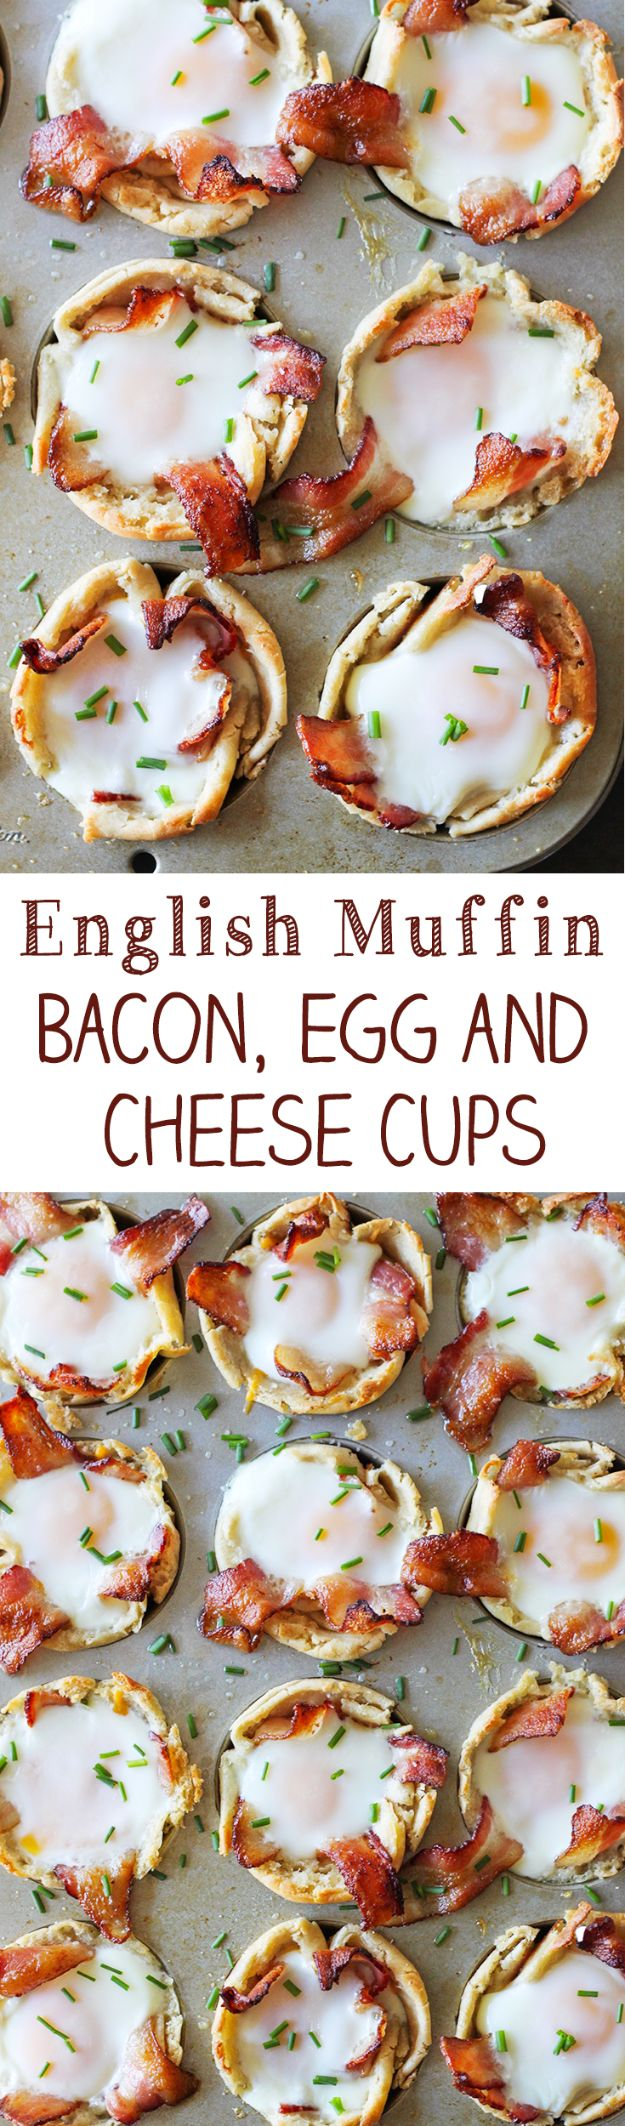 Best Recipes for the Cheese Lover - English Muffin Bacon Egg and Cheese Cups - Easy Recipe Ideas With Cheese - Homemade Appetizers, Dips, Dinners, Snacks, Pasta Dishes, Healthy Lunches and Soups Made With Your Favorite Cheeses - Ricotta, Cheddar, Swiss, Parmesan, Goat Chevre, Mozzarella and Feta Ideas - Grilled, Healthy, Vegan and Vegetarian #cheeserecipes #recipes #recipeideas #cheese #cheeserecipe